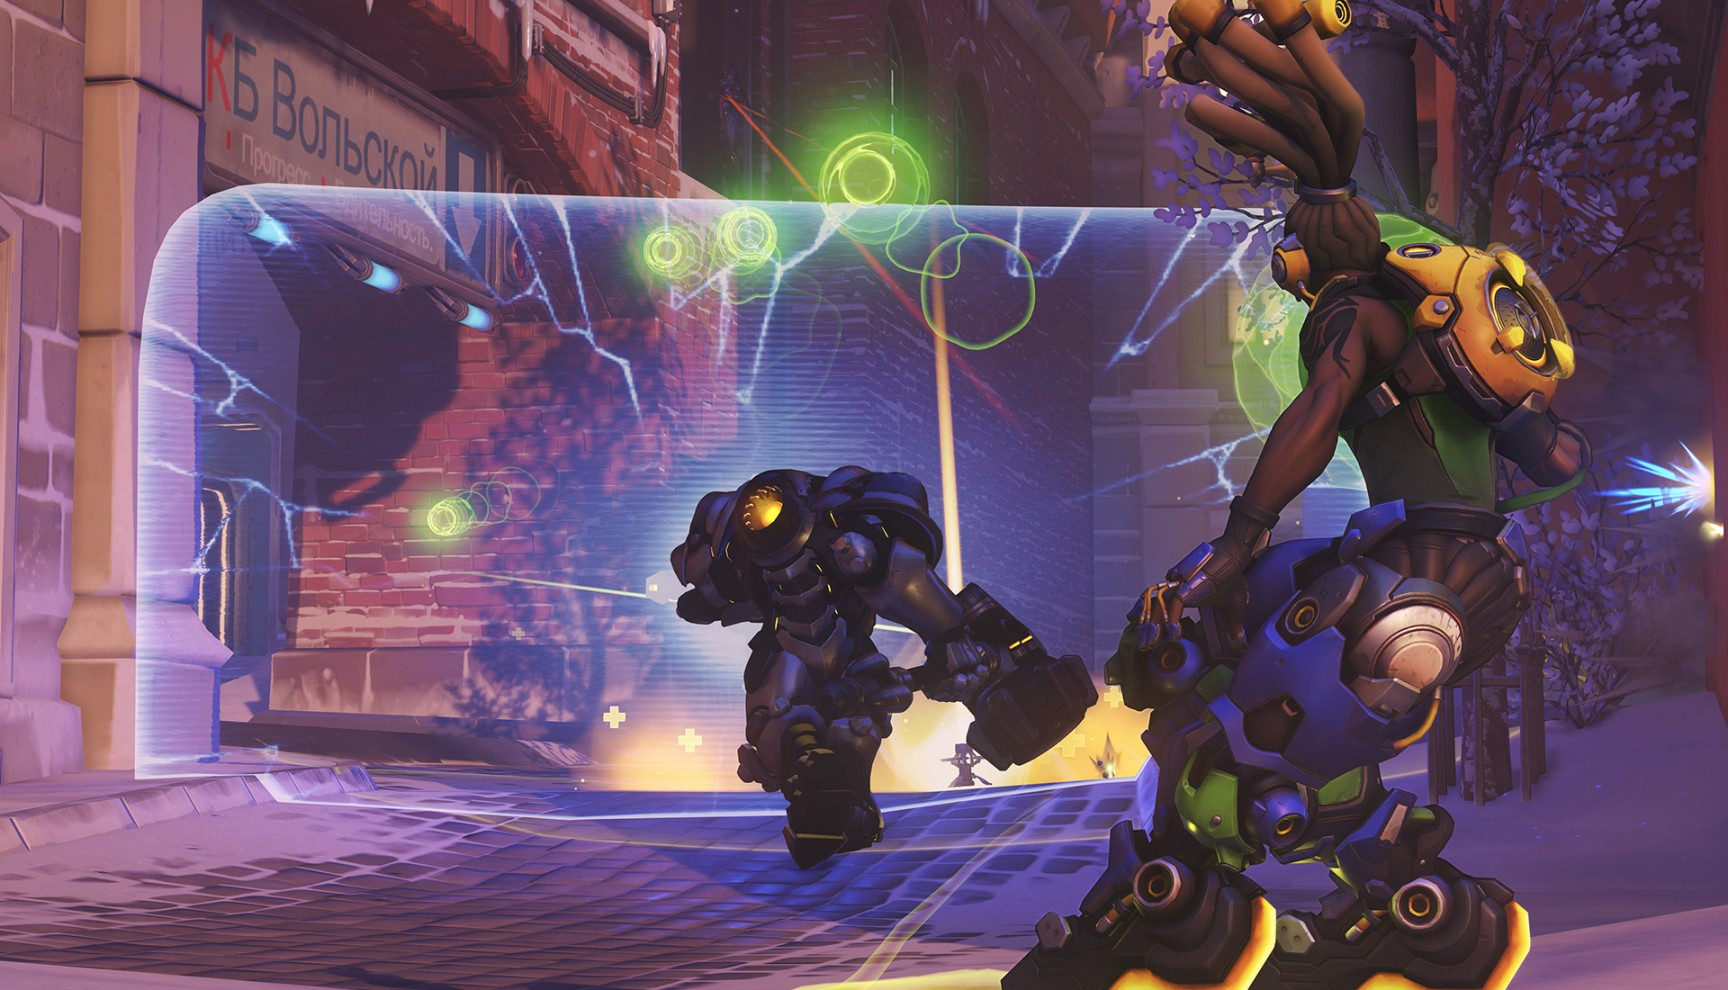 Rule va riding lúcio as widowmaker watches photo 1